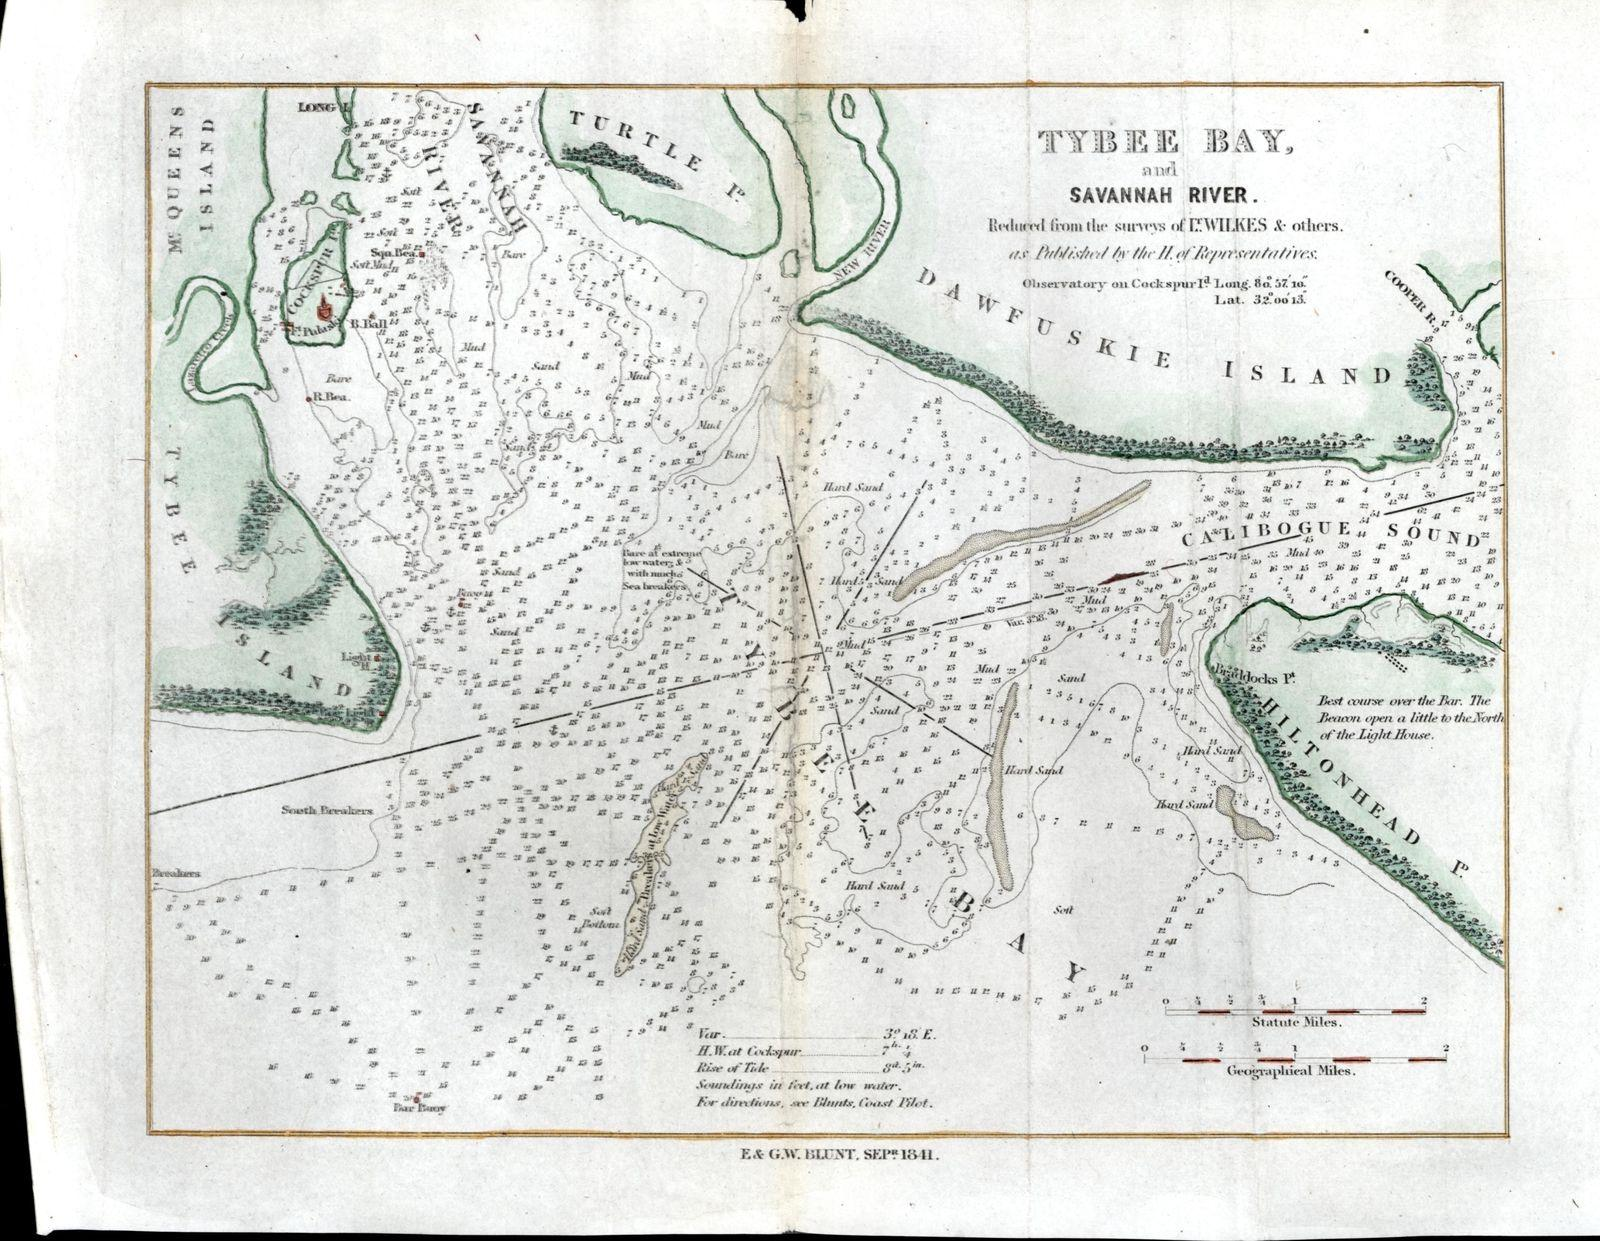 Savannah River Georgia Tybee Bay 1850 Blunt Old Color Nautical Map